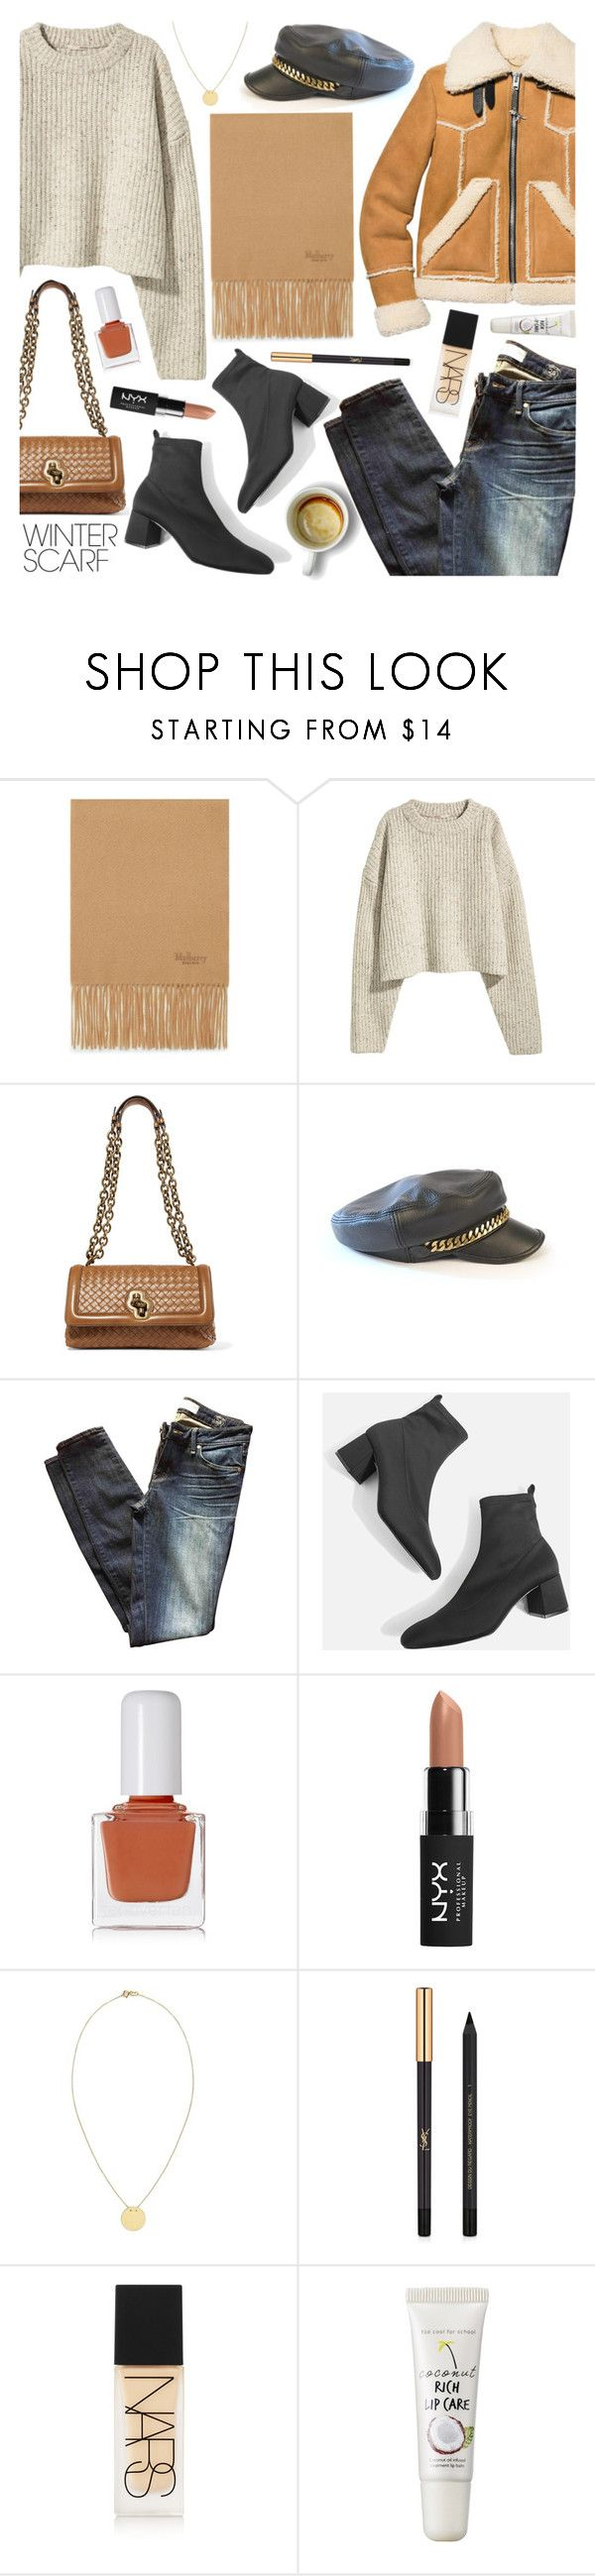 """""""Wrapper's Delight: Winter Scarf❄ 7-2-2018"""" by anamarija00 ❤ liked on Polyvore featuring Mulberry, H&M, Bottega Veneta, Marc by Marc Jacobs, Topshop, tenoverten, NYX, Talia Naomi, Yves Saint Laurent and NARS Cosmetics"""